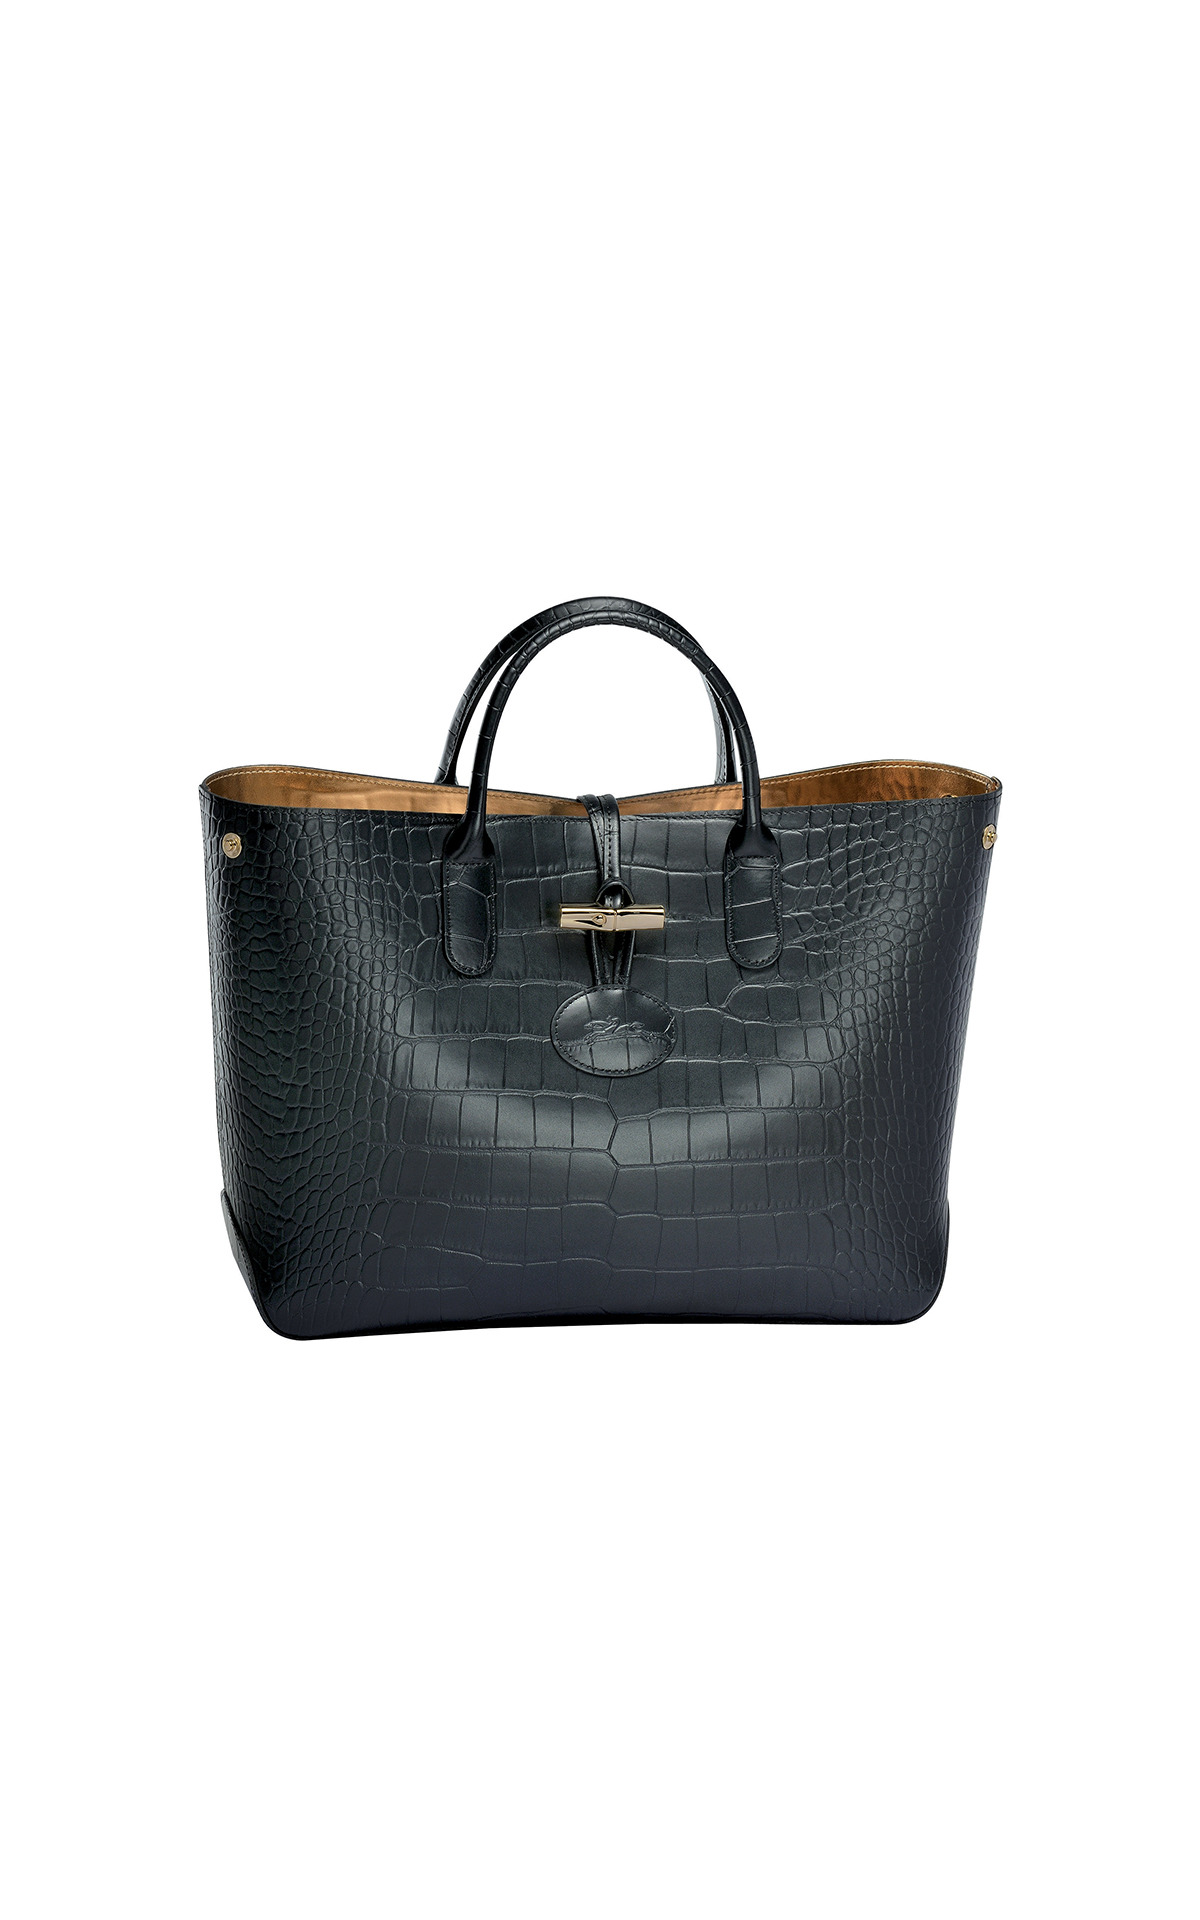 Longchamp Roseau croco black leather tote from Bicester Village